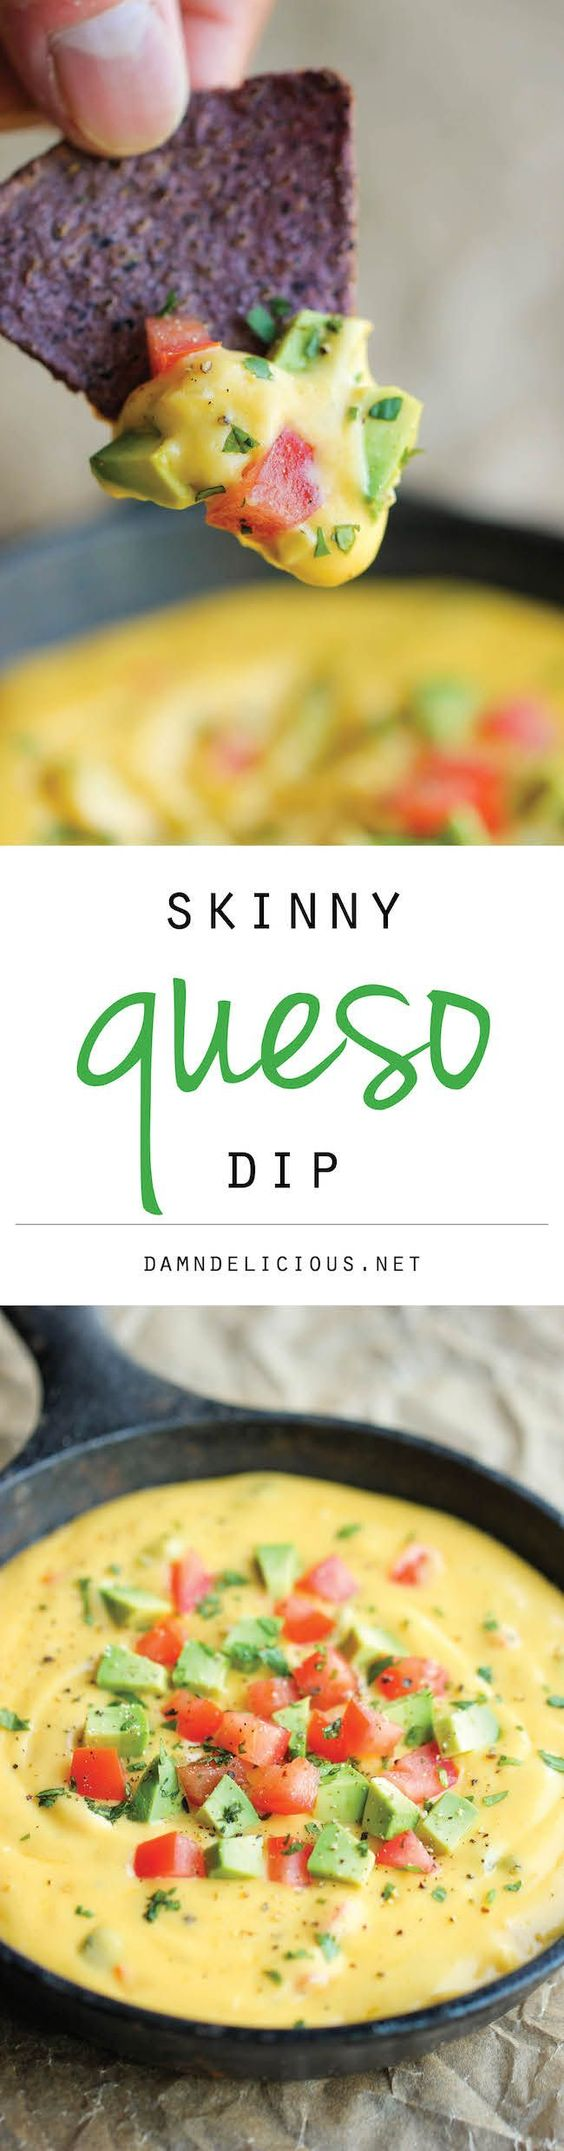 Skinny Queso Dip | Recipe | Spoons, Dips and Skinny